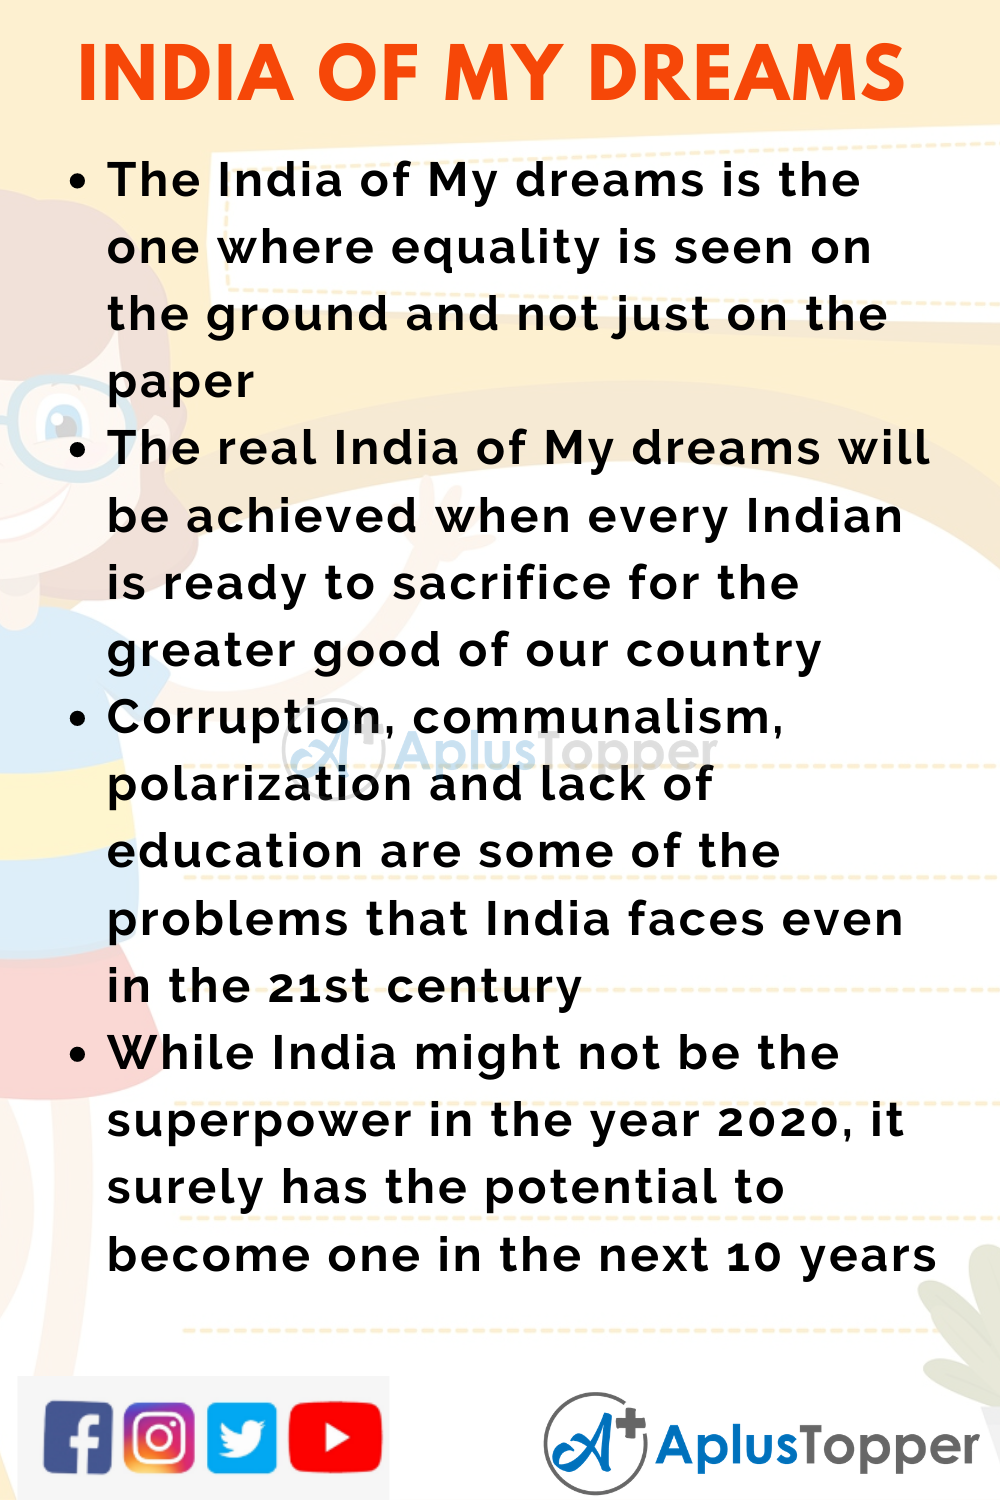 Essay on india of my deram cheap best essay ghostwriting for hire usa